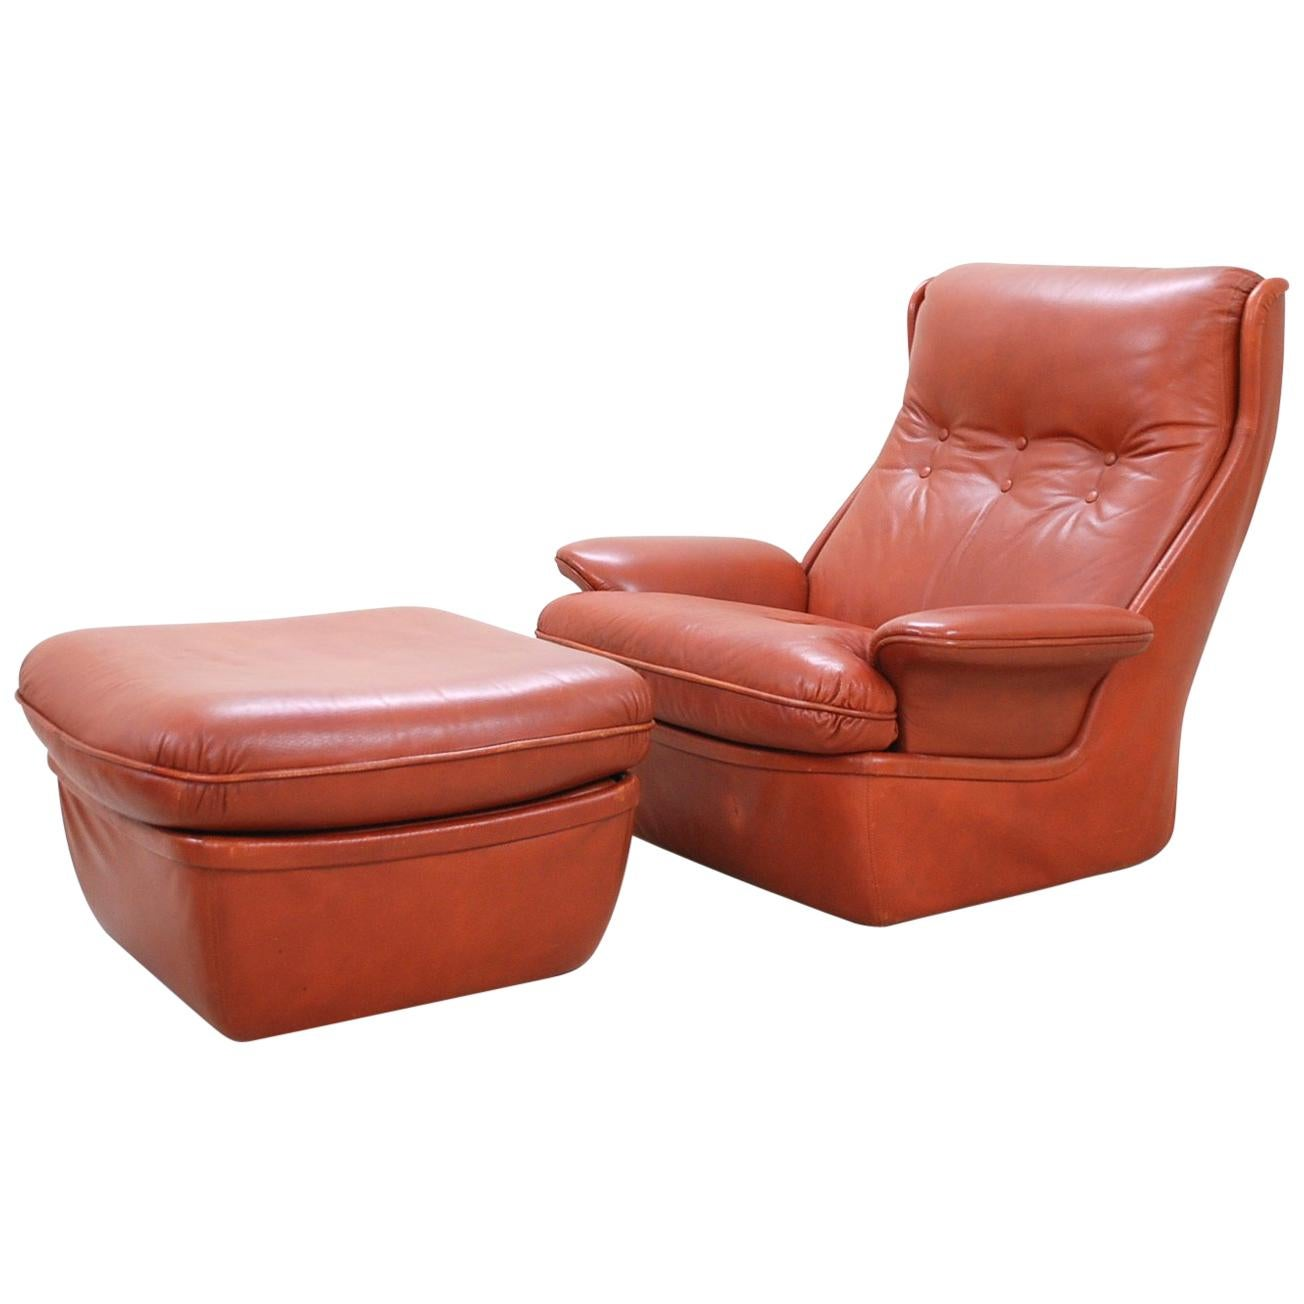 1970 Space Age Ox Red Leather Lounge Chair and Ottoman